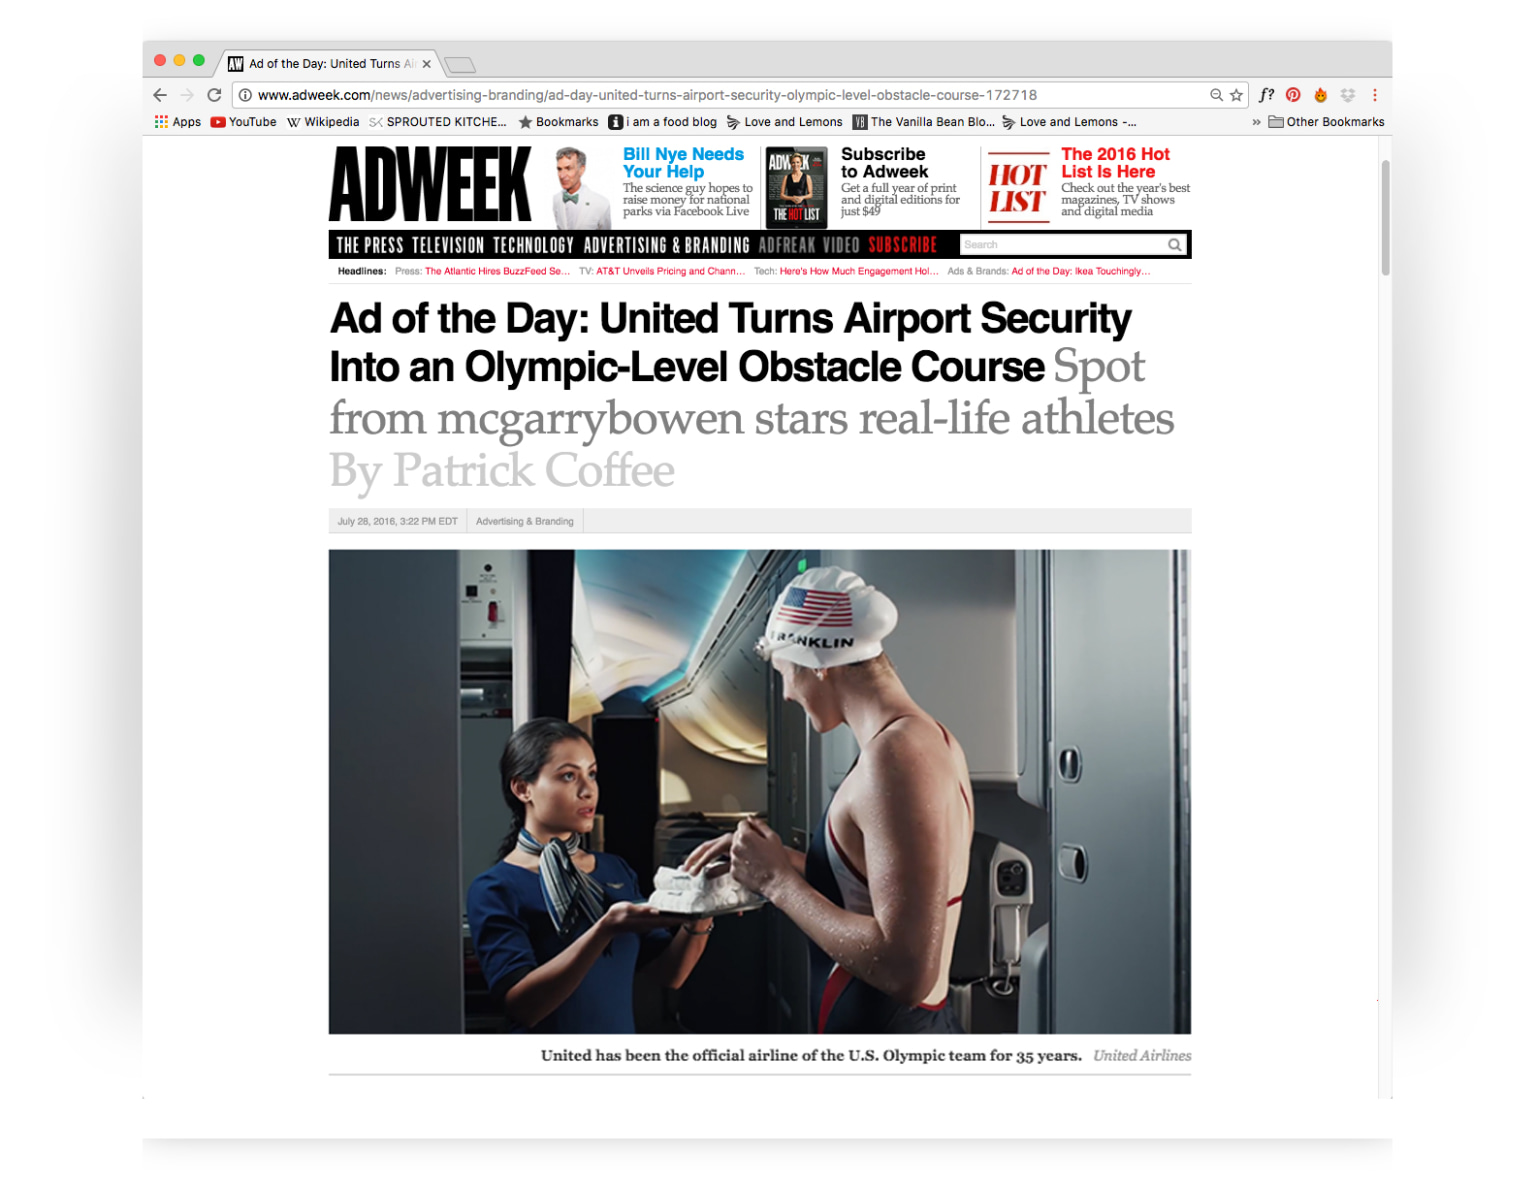 United Airlines - Olympics